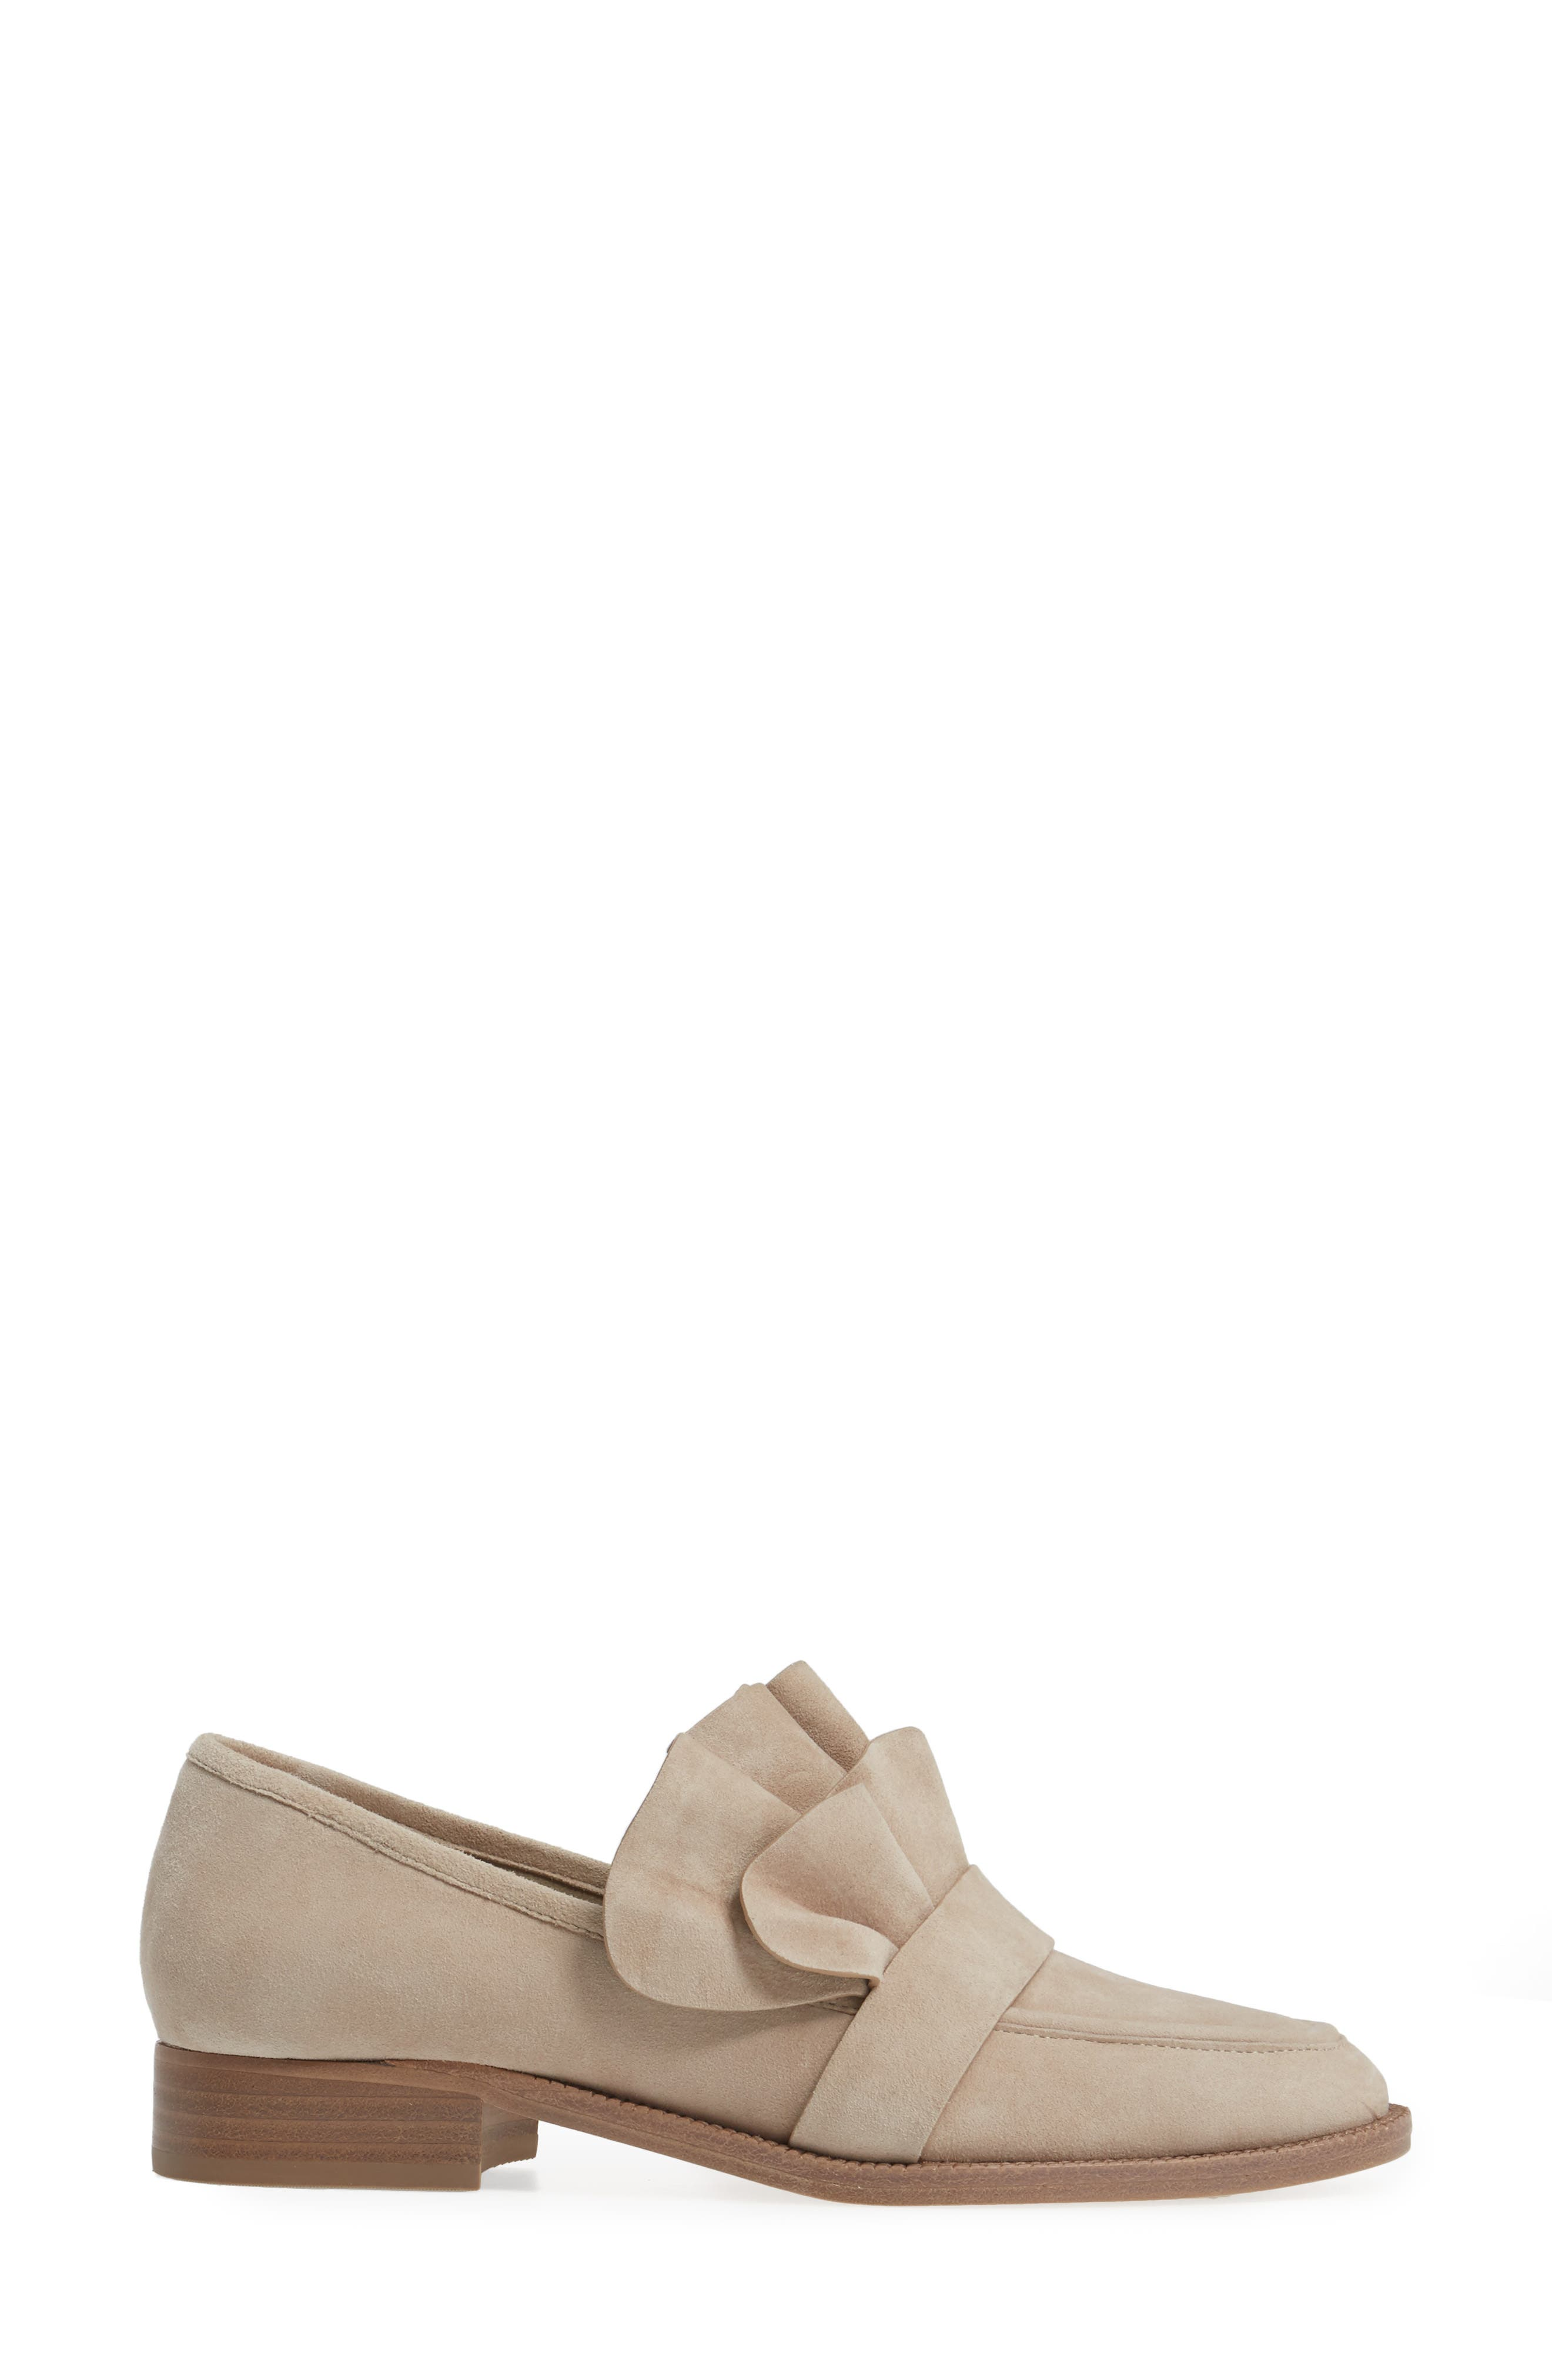 Tenley Ruffled Loafer,                             Alternate thumbnail 11, color,